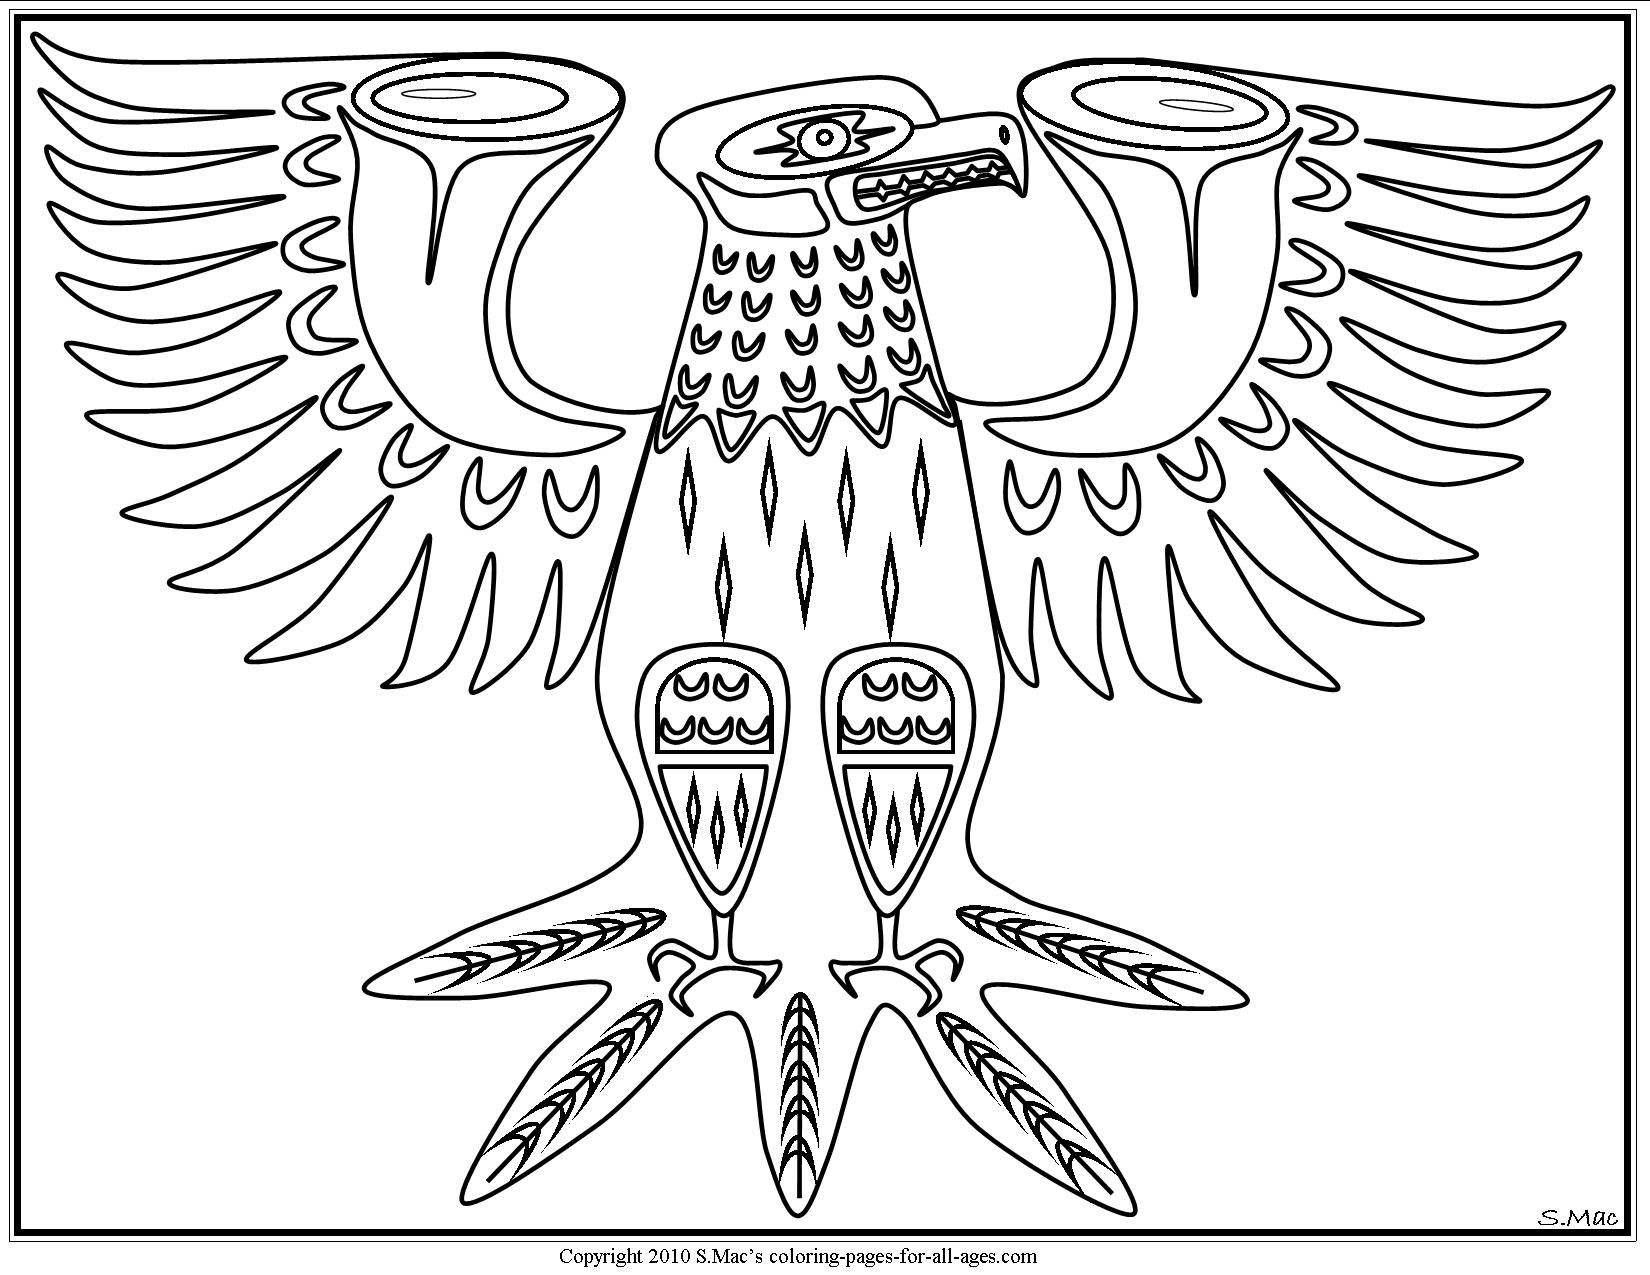 Coloring page x wing - Native American Symbols American Indians Mandalas To Color Coloring Sheets Adult Coloring Free Coloring Coloring Pages For Adults Native Art